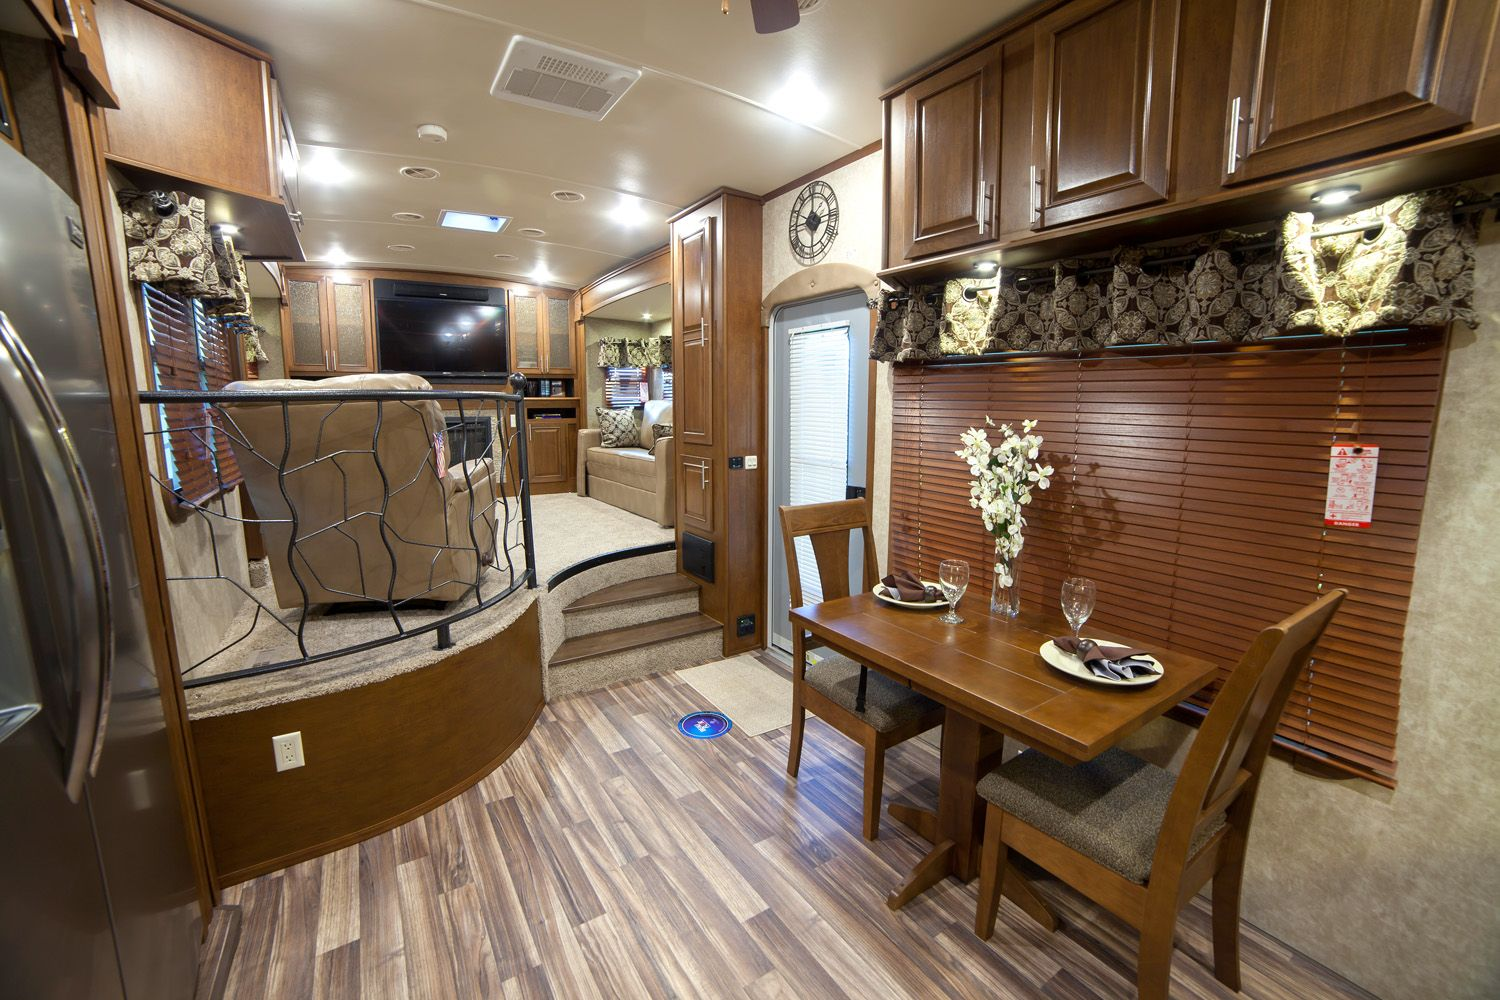 Astonishing used front living room fifth wheel for sale - Front living room fifth wheel used ...